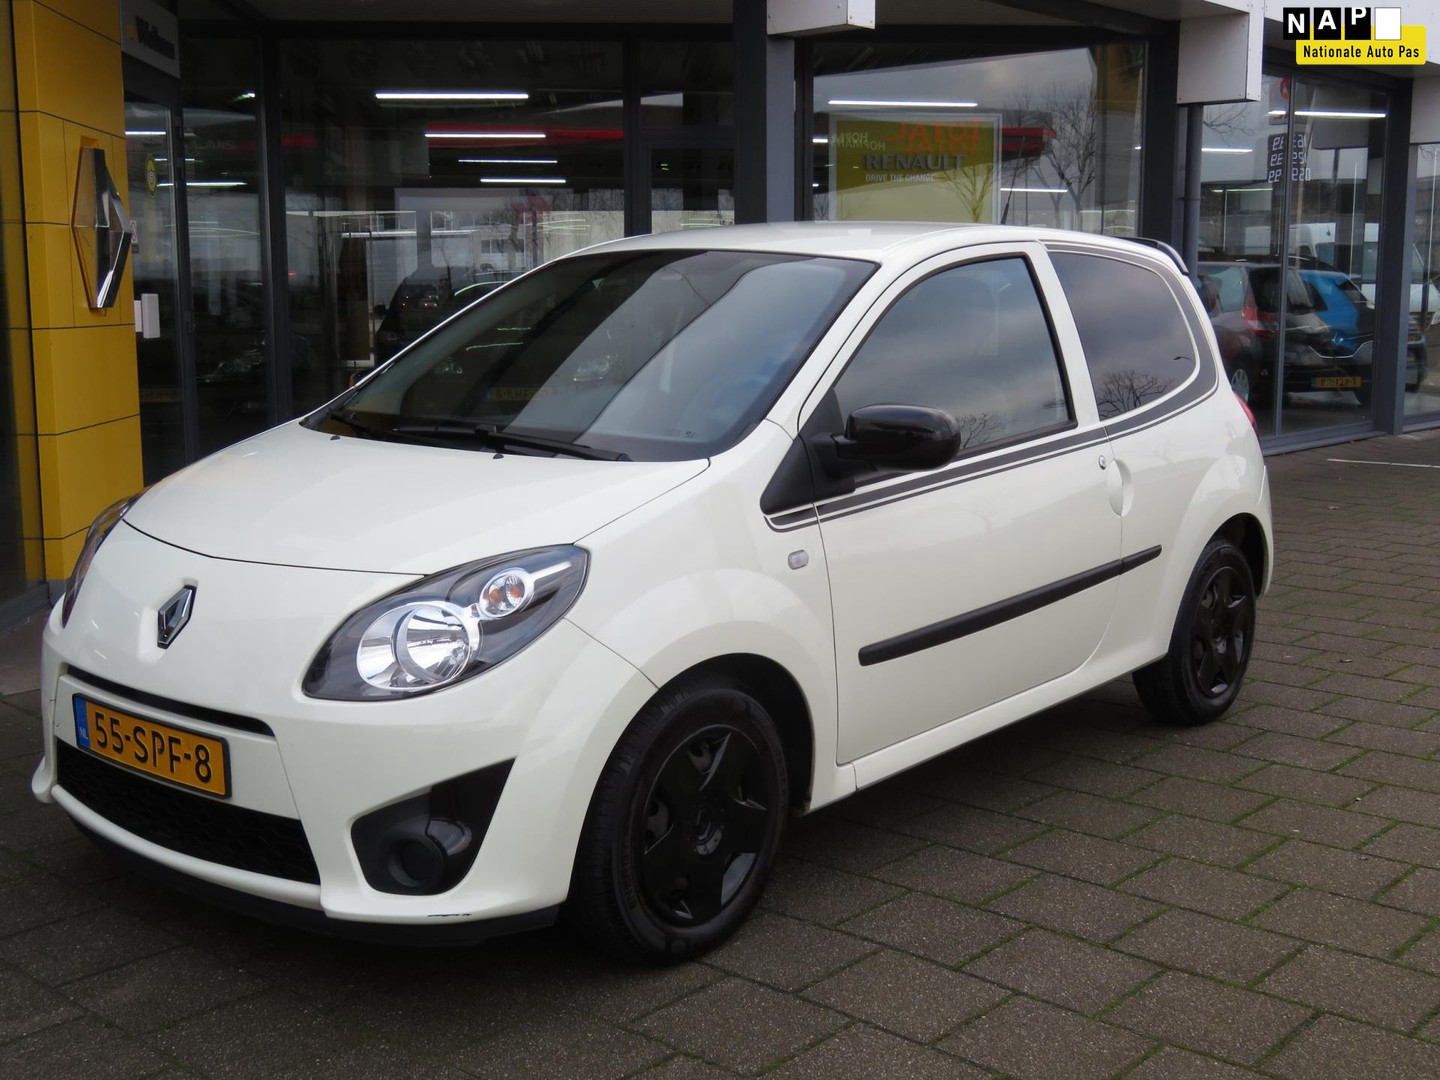 Renault Twingo 1.2-16v 75 collection